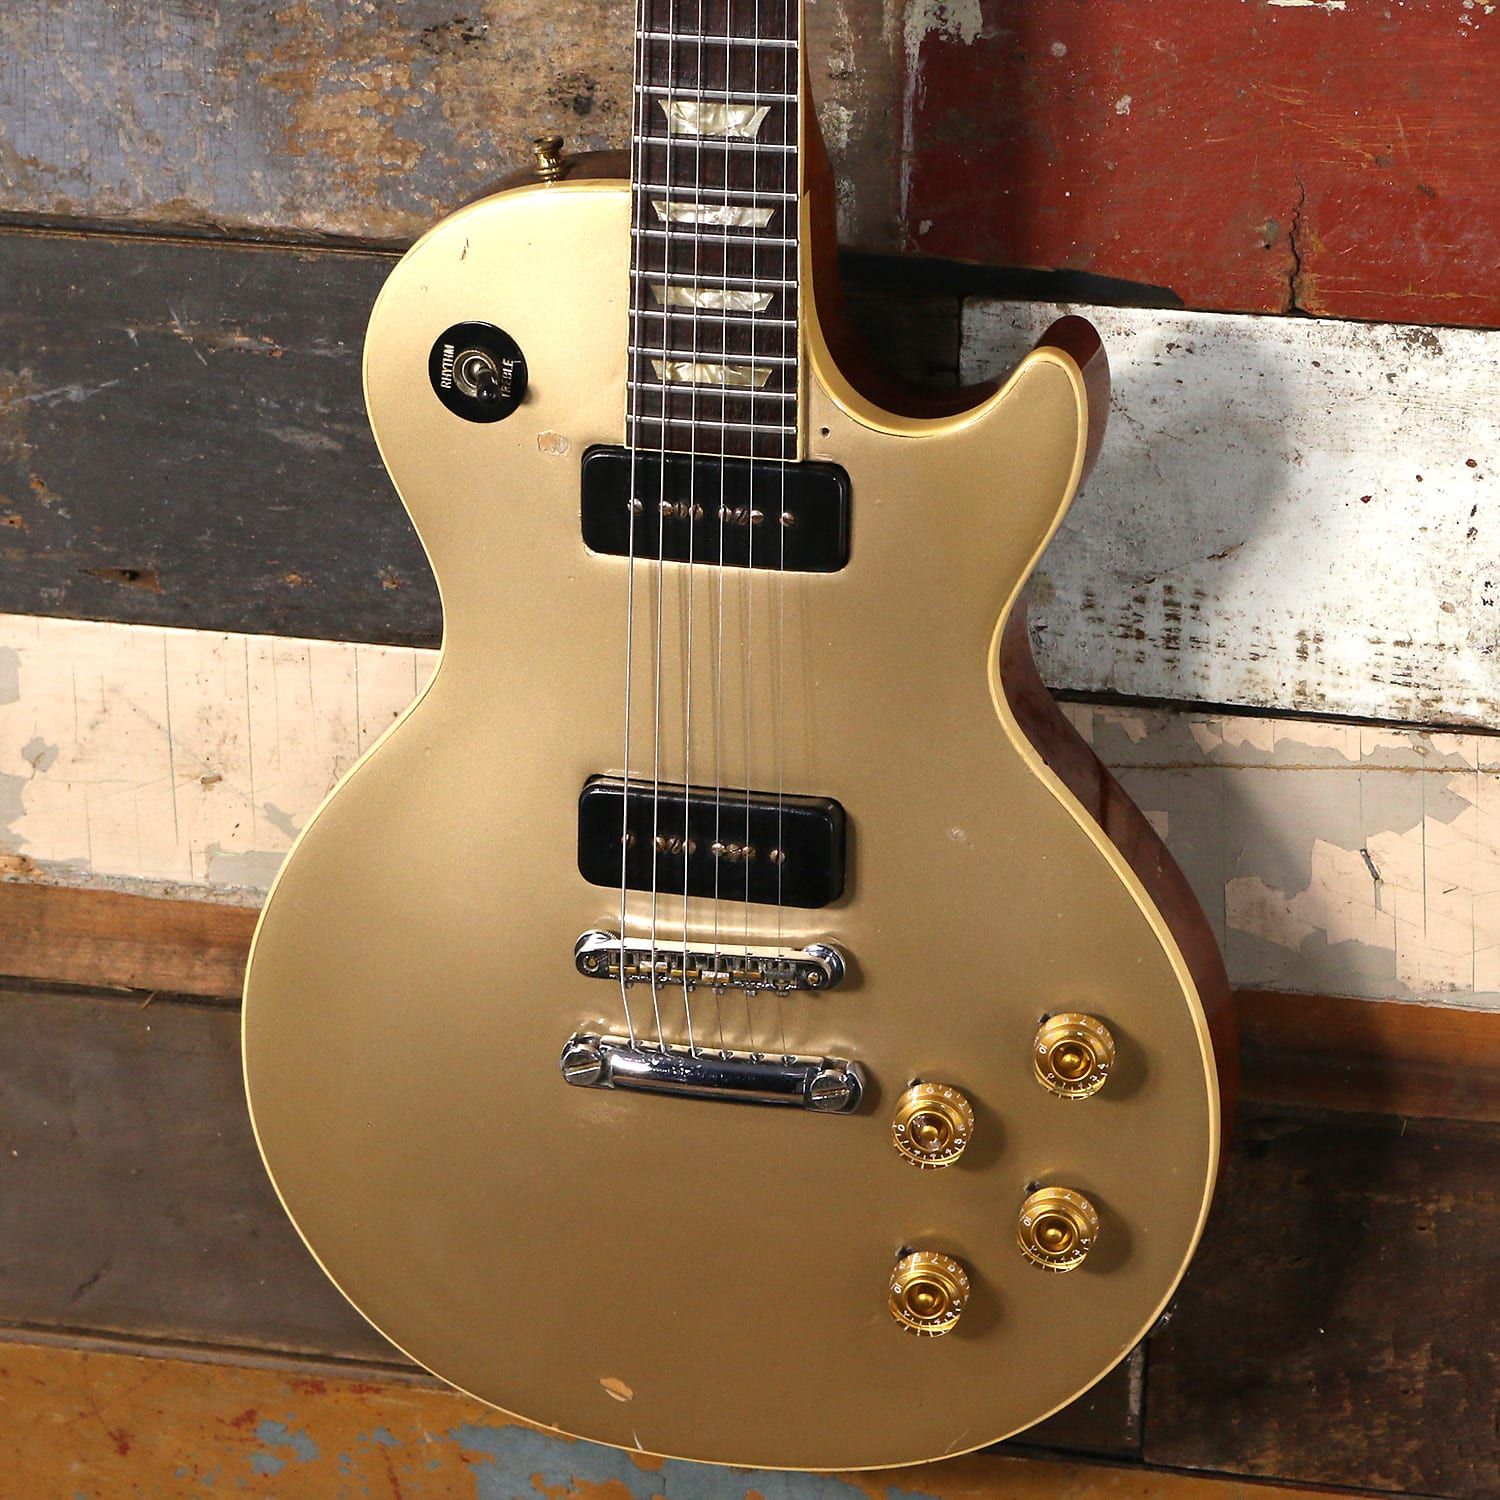 1970 s gibson les paul deluxe gold 1971 1974 Deluxe Gold Top Gibson